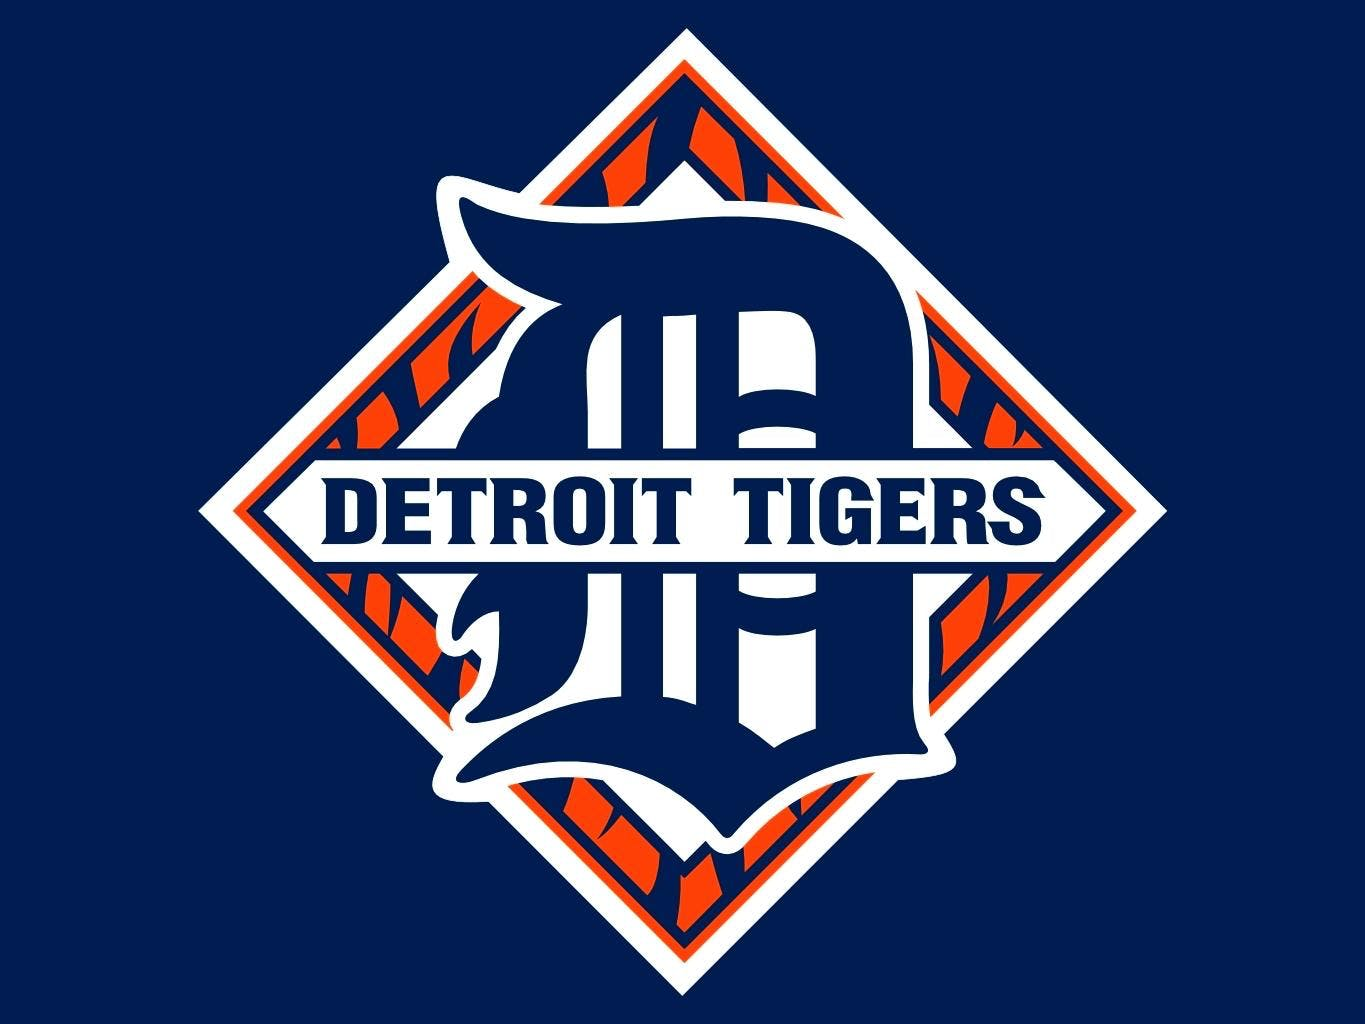 Detroit Tigers vs. Toronto Blue Jays wPreferred Charters